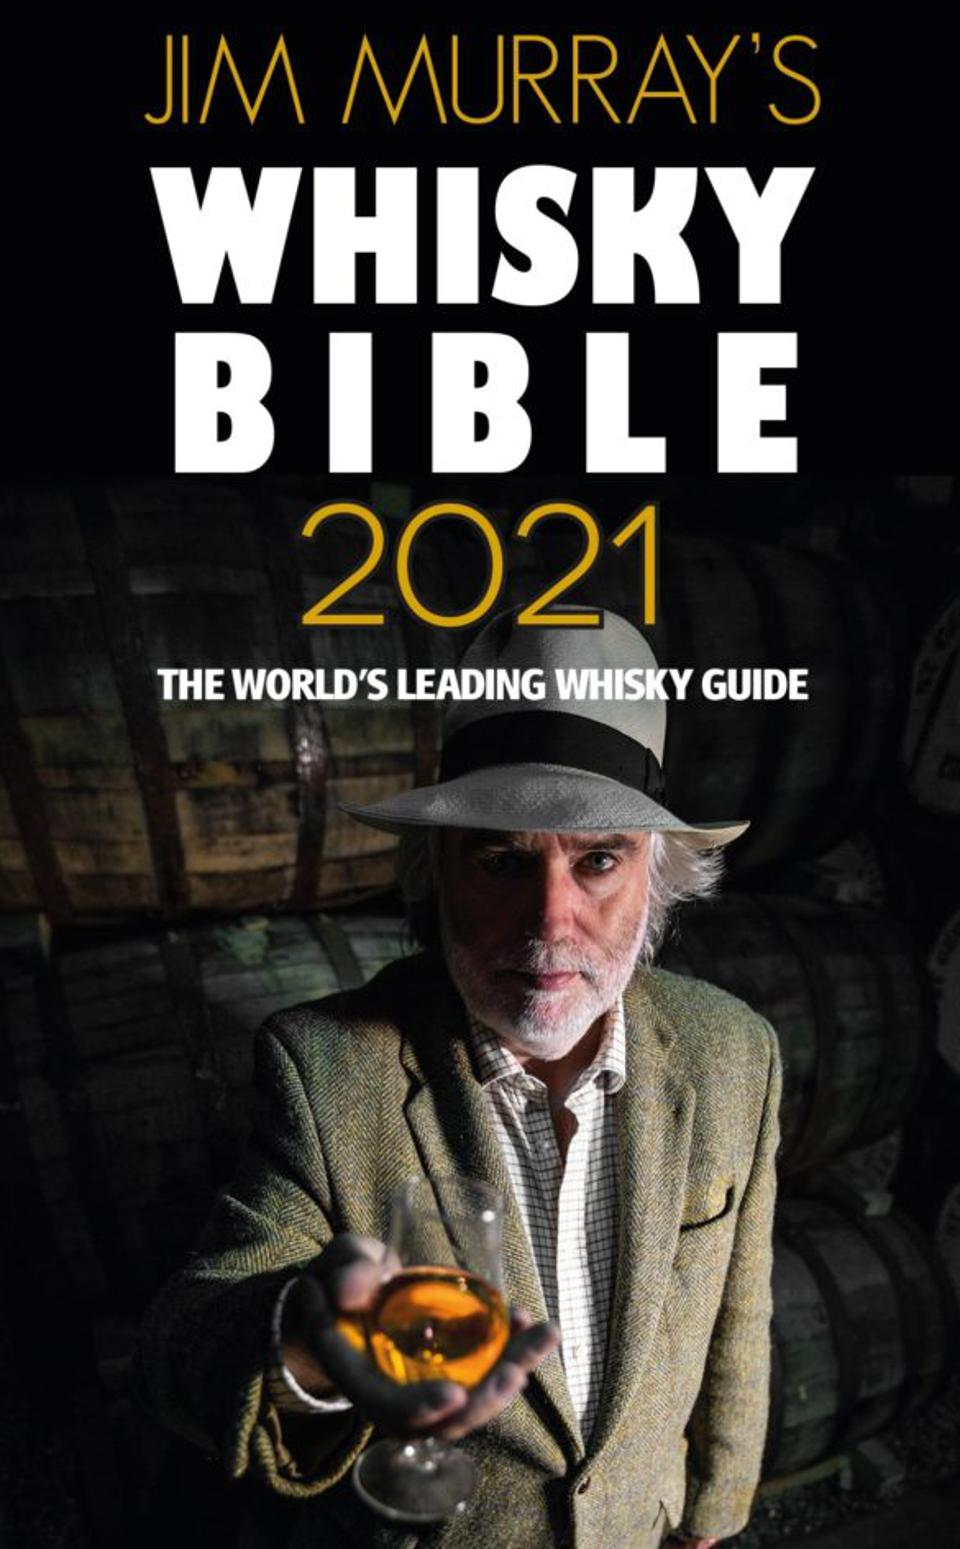 Best Single Malt Scotch 2021 Jim Murray's 2021 Whisky Bible Announces The World's Top 50 Whiskies